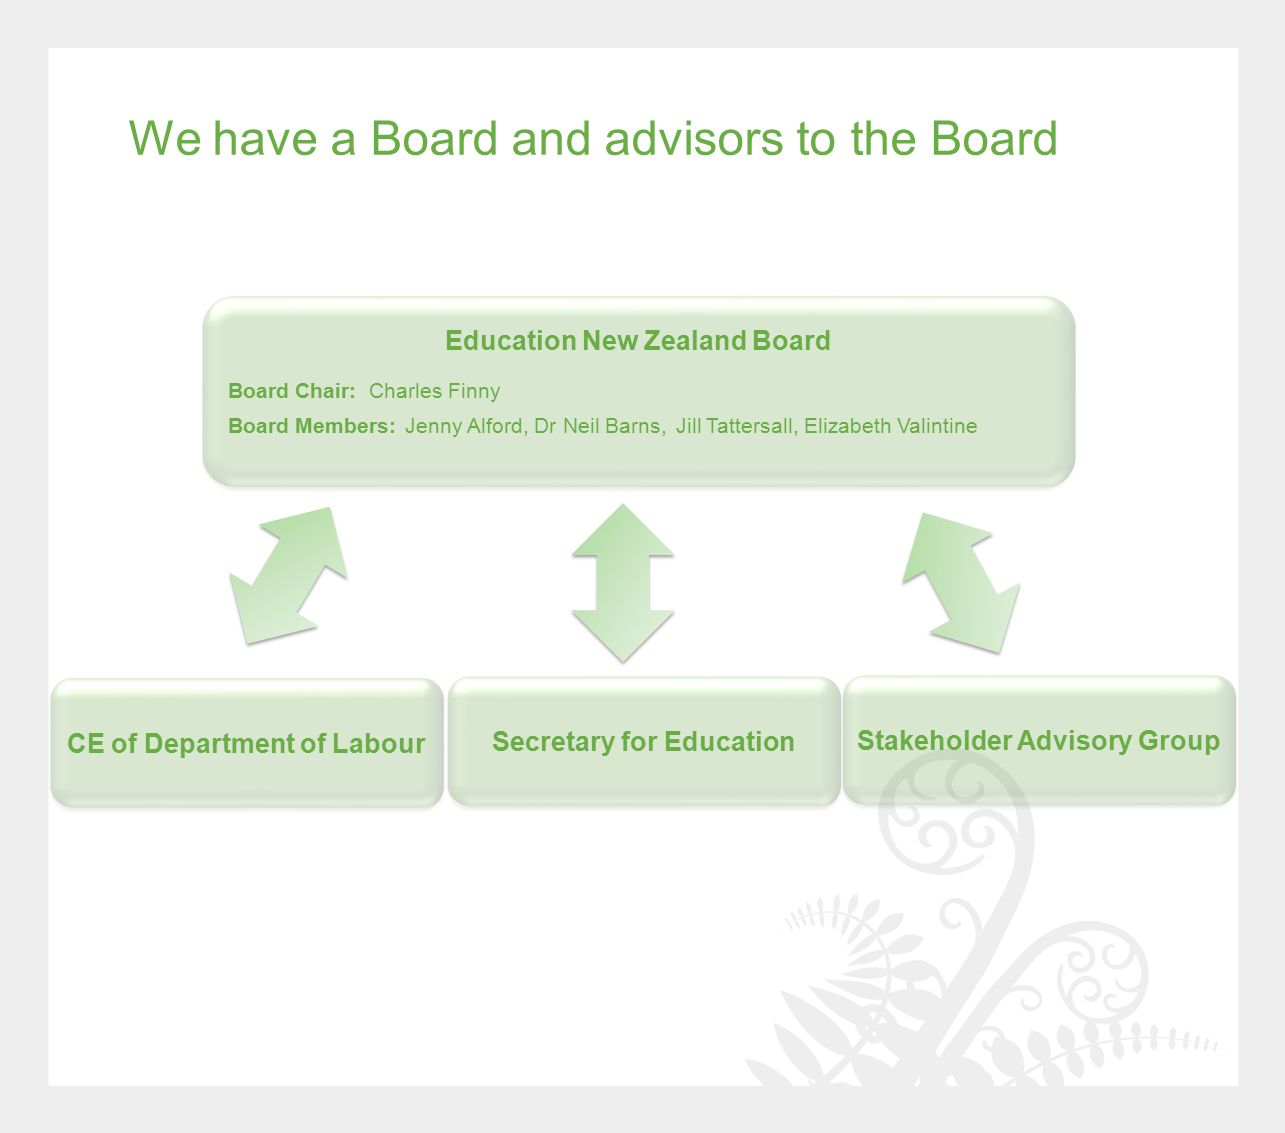 We have a Board and advisors to the Board Education New Zealand Board Stakeholder Advisory Group Secretary for Education CE of Department of Labour Board Chair: Charles Finny Board Members: Jenny Alford, Dr Neil Barns, Jill Tattersall, Elizabeth Valintine